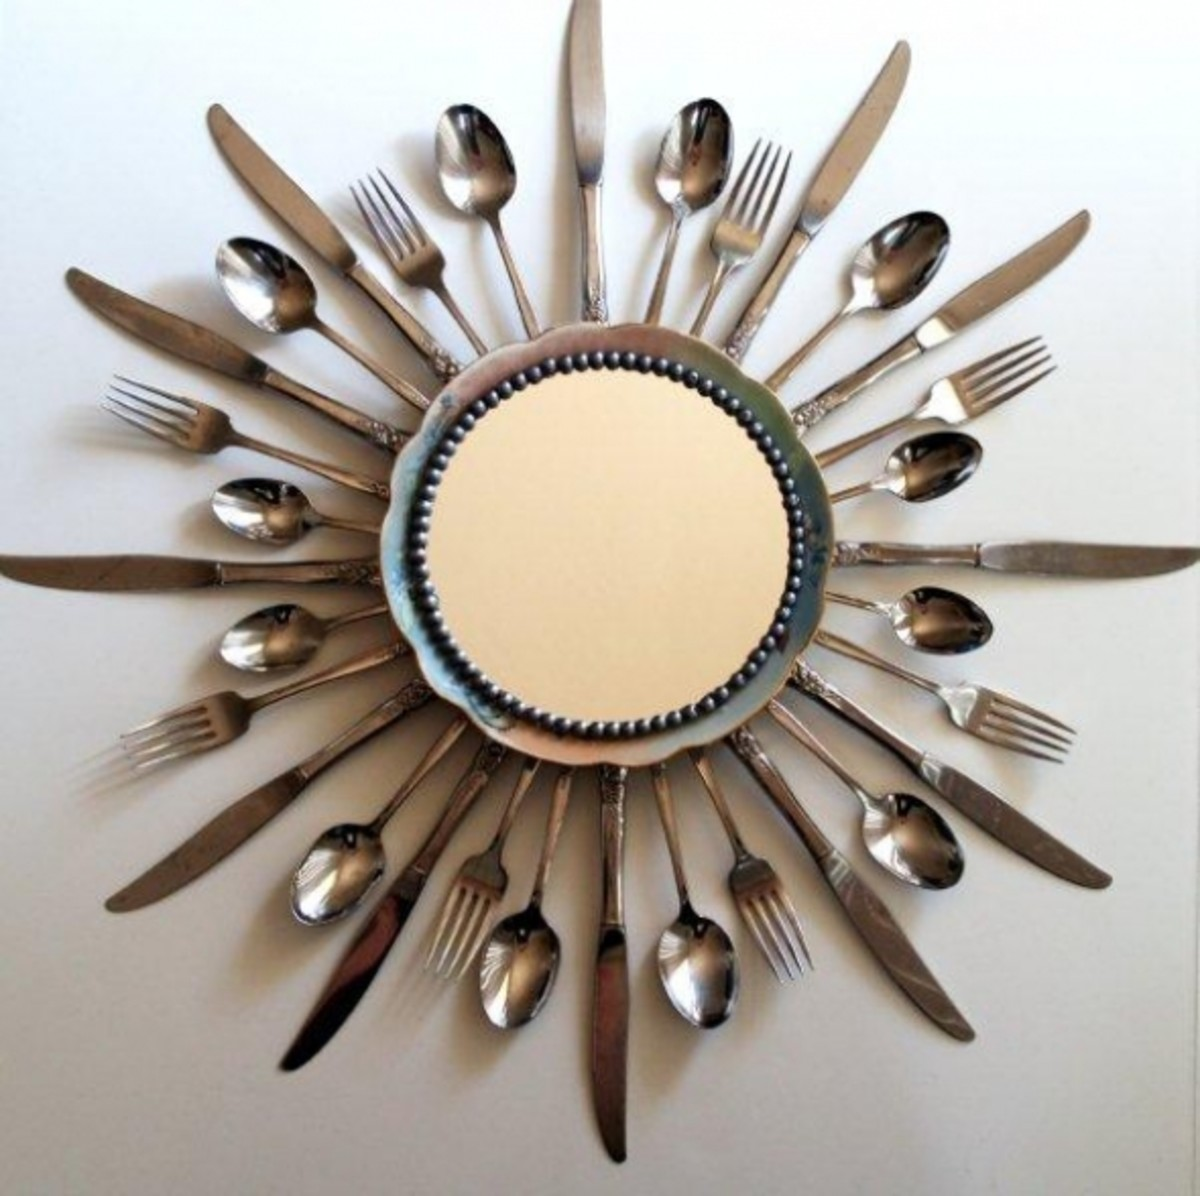 Silverware mirror made by Beverly at FlamingoToes.com. See the link below for instructions on making your own.